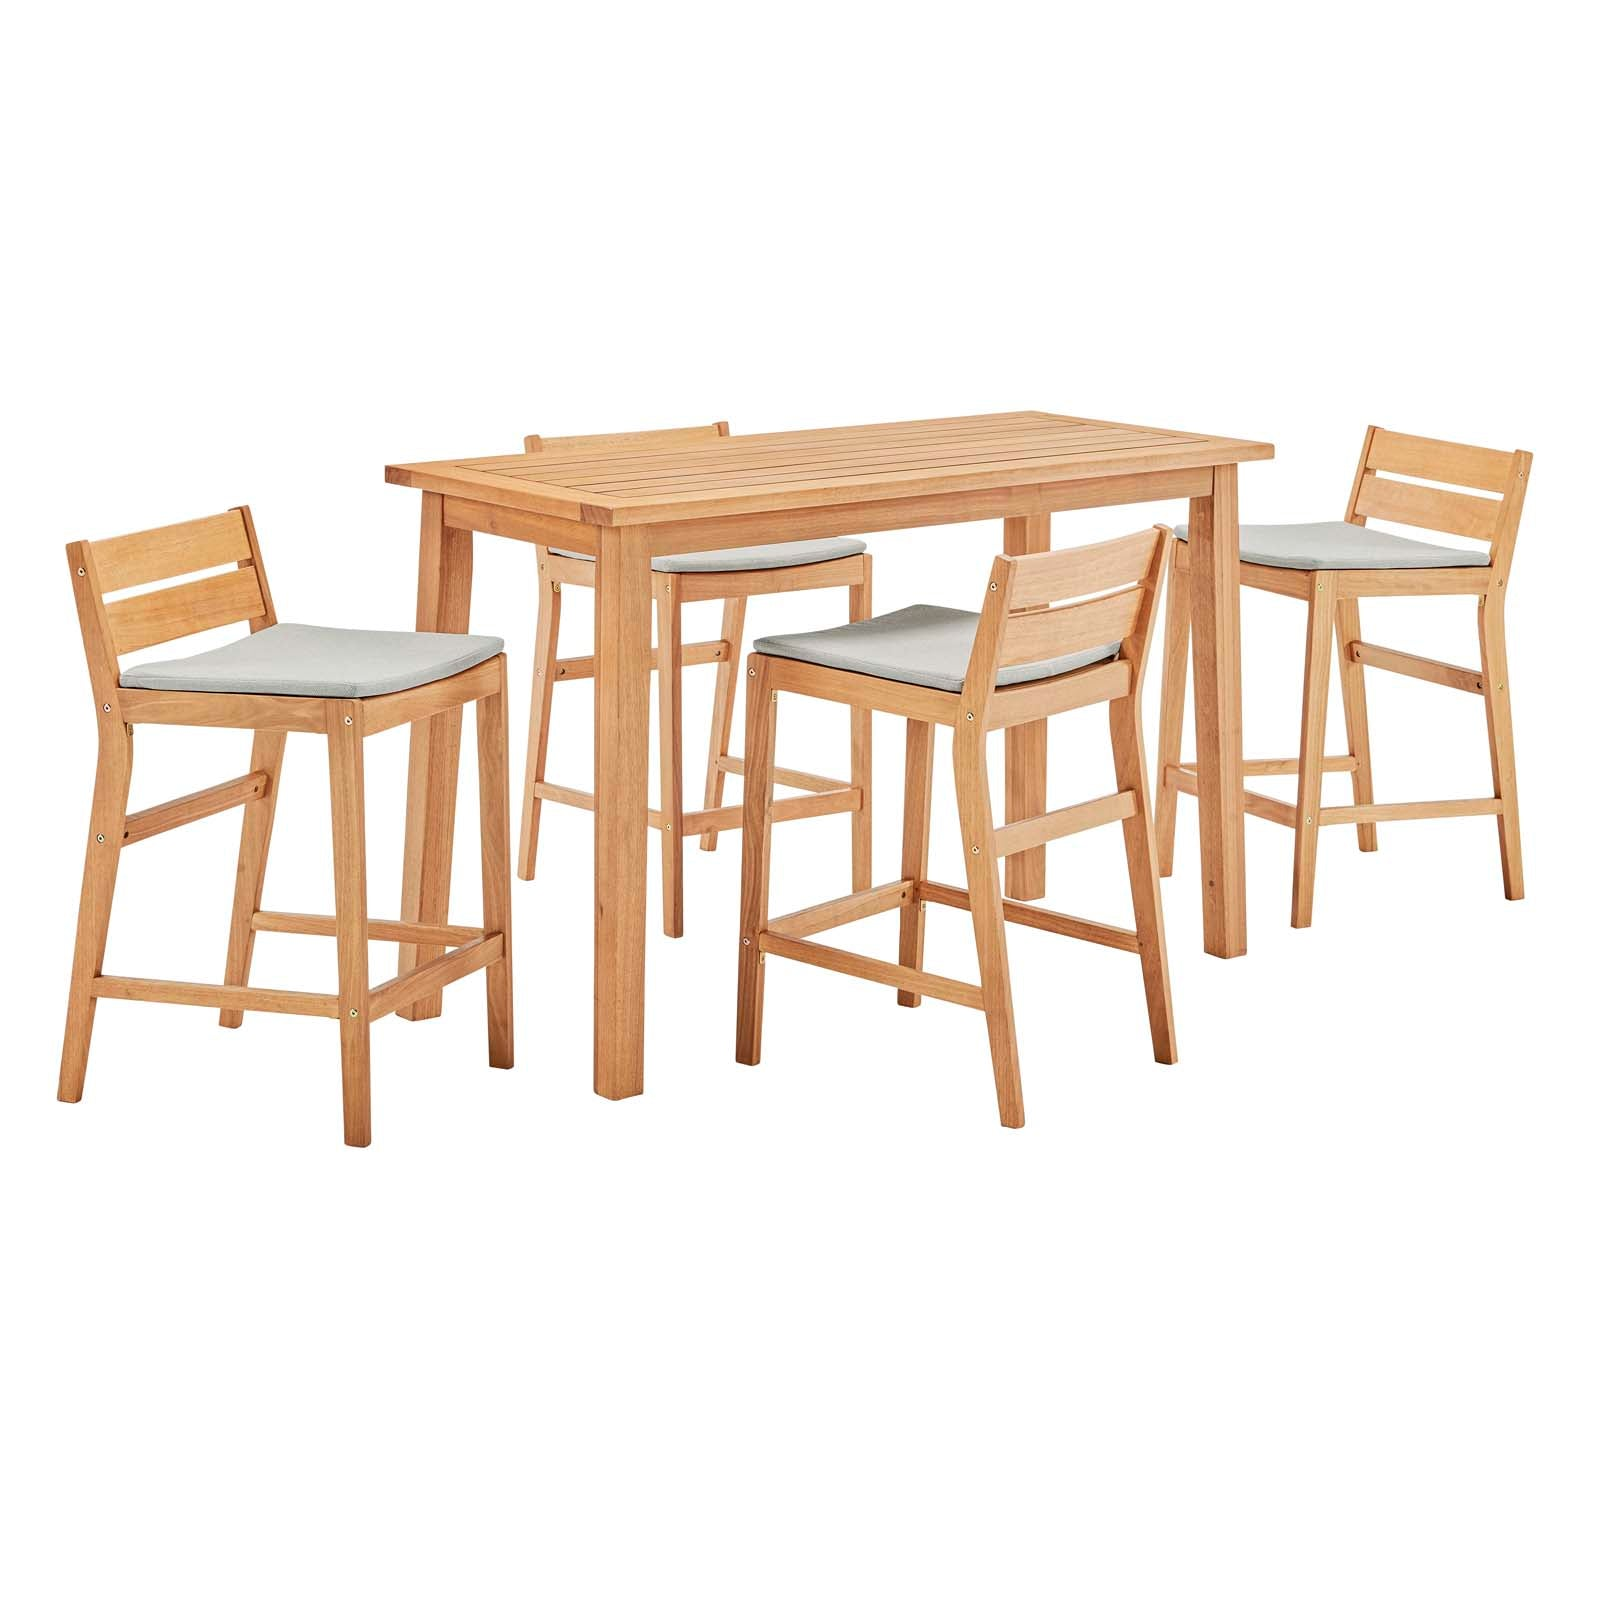 Riverlake 5 Piece Outdoor Patio Ash Wood Bar Set